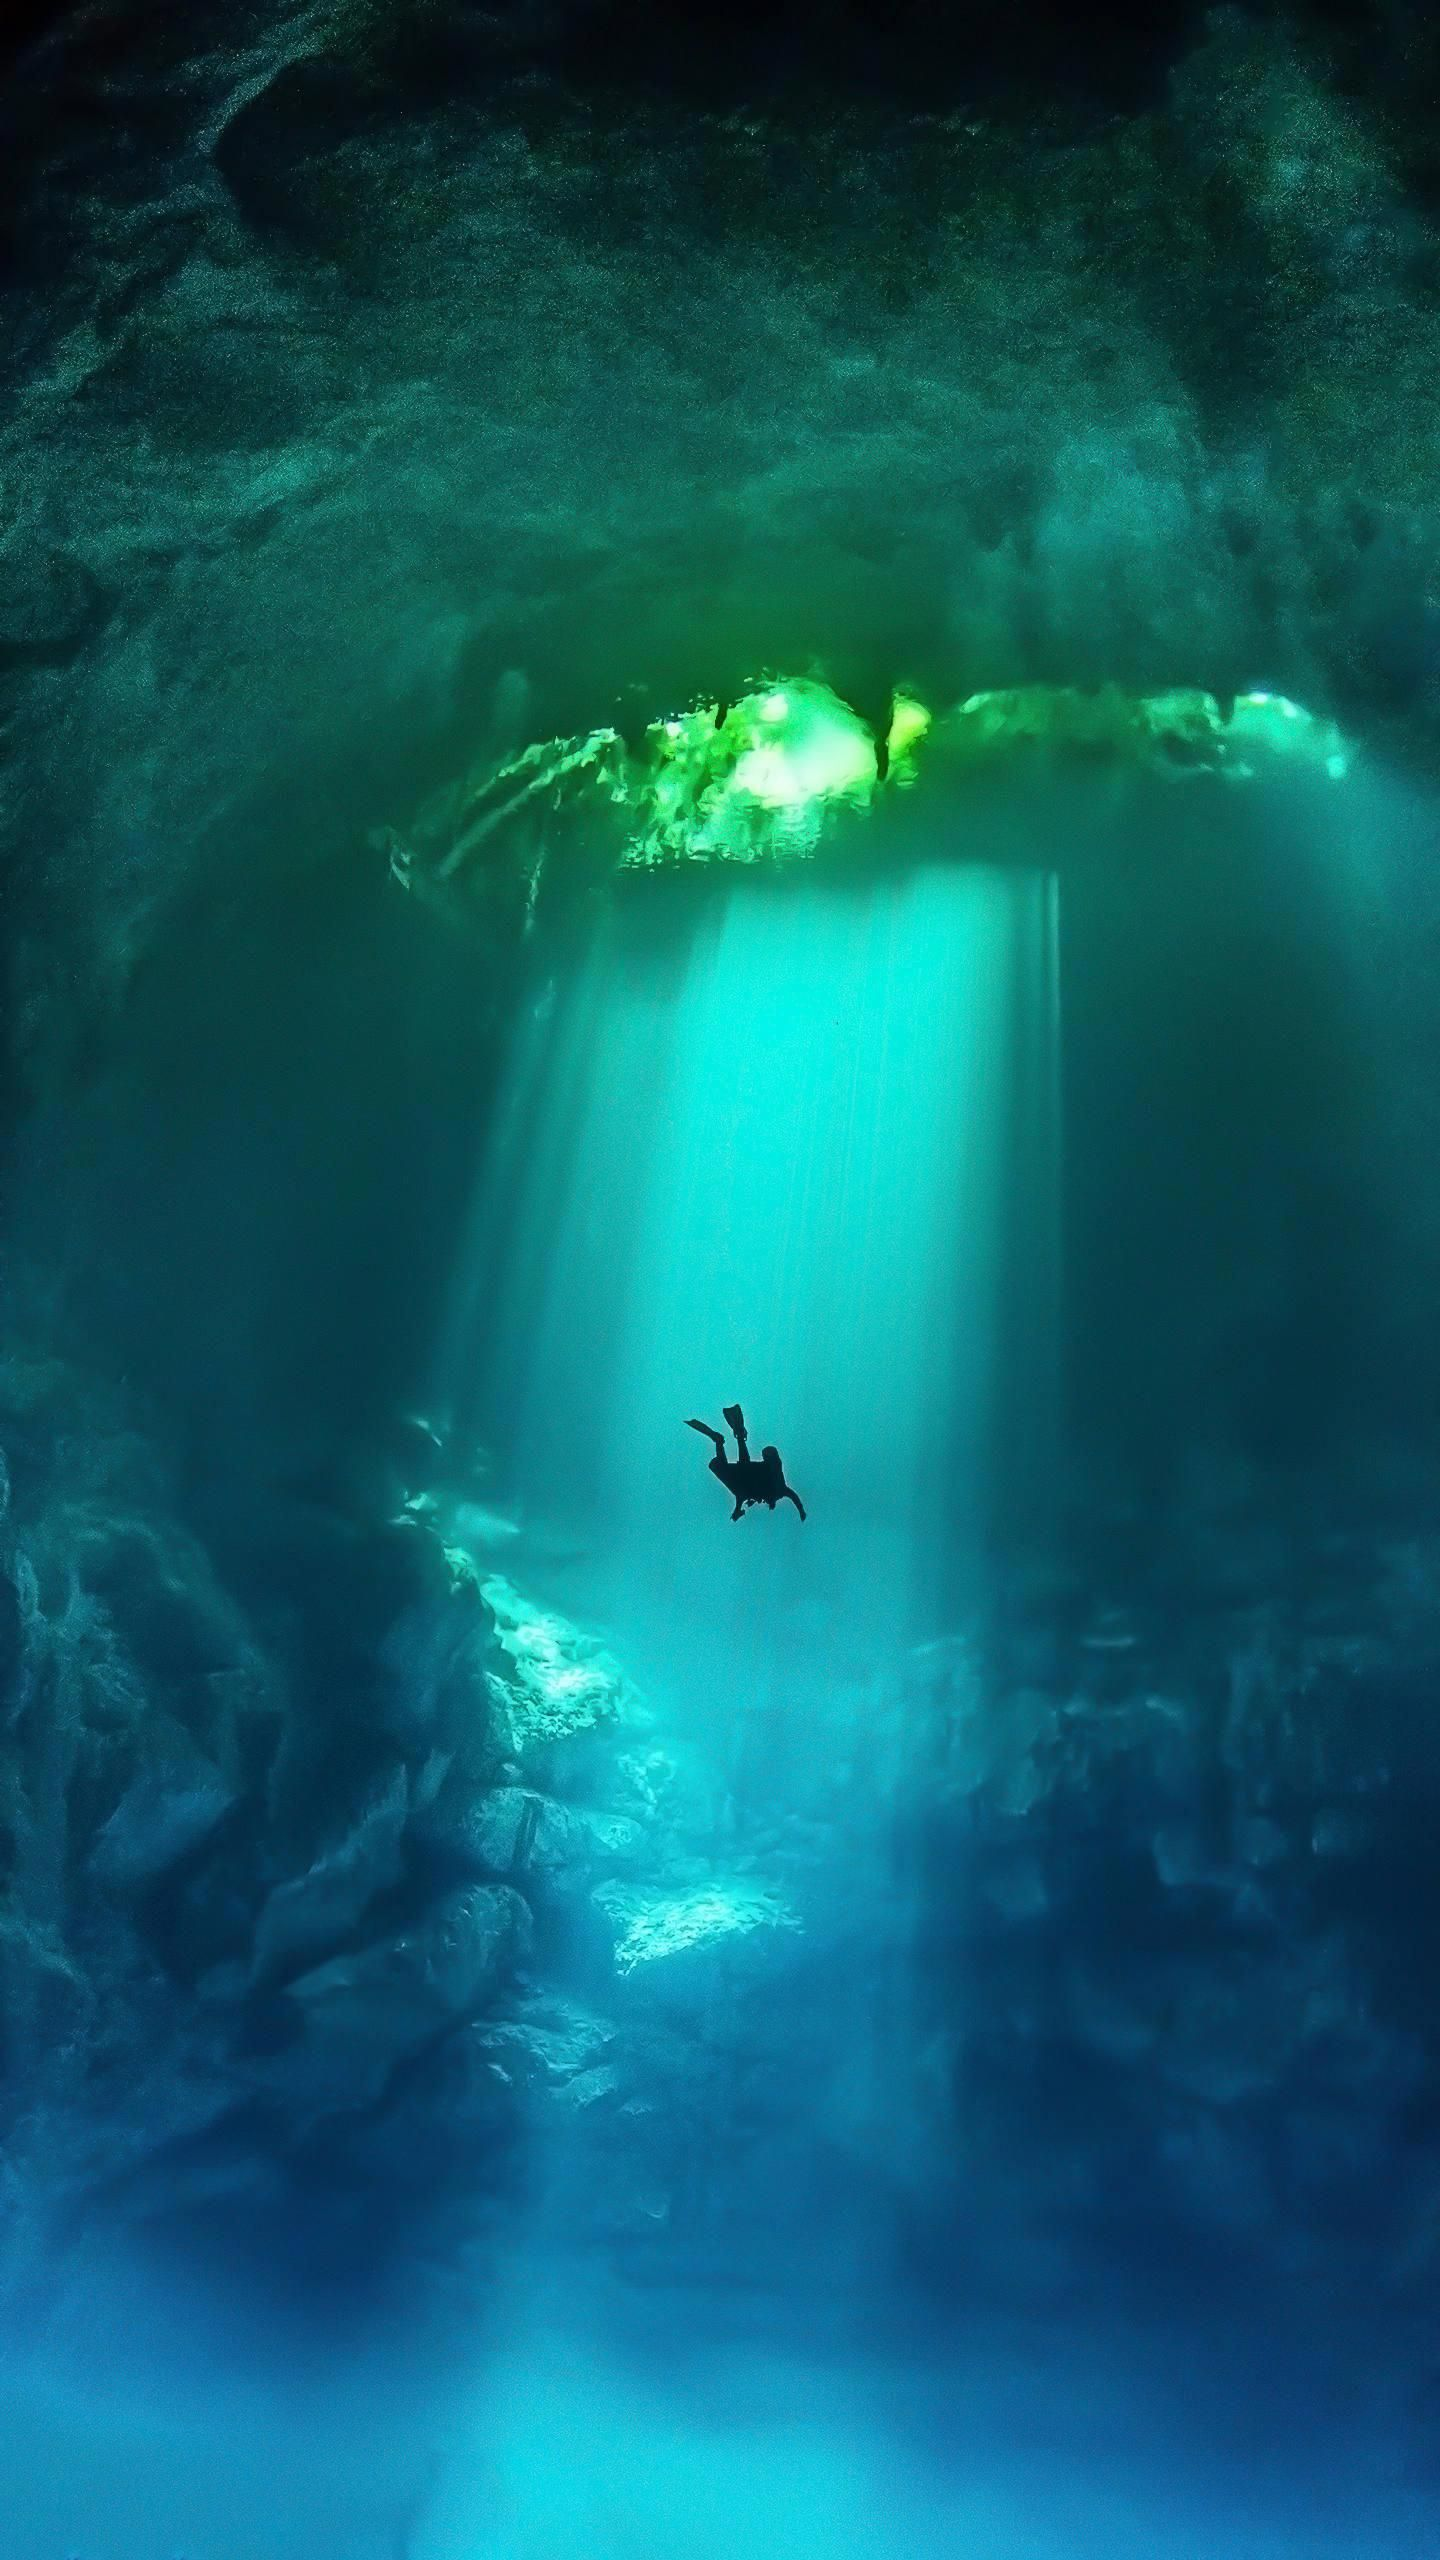 Scenery under water. #scubadivingequipmentnearme